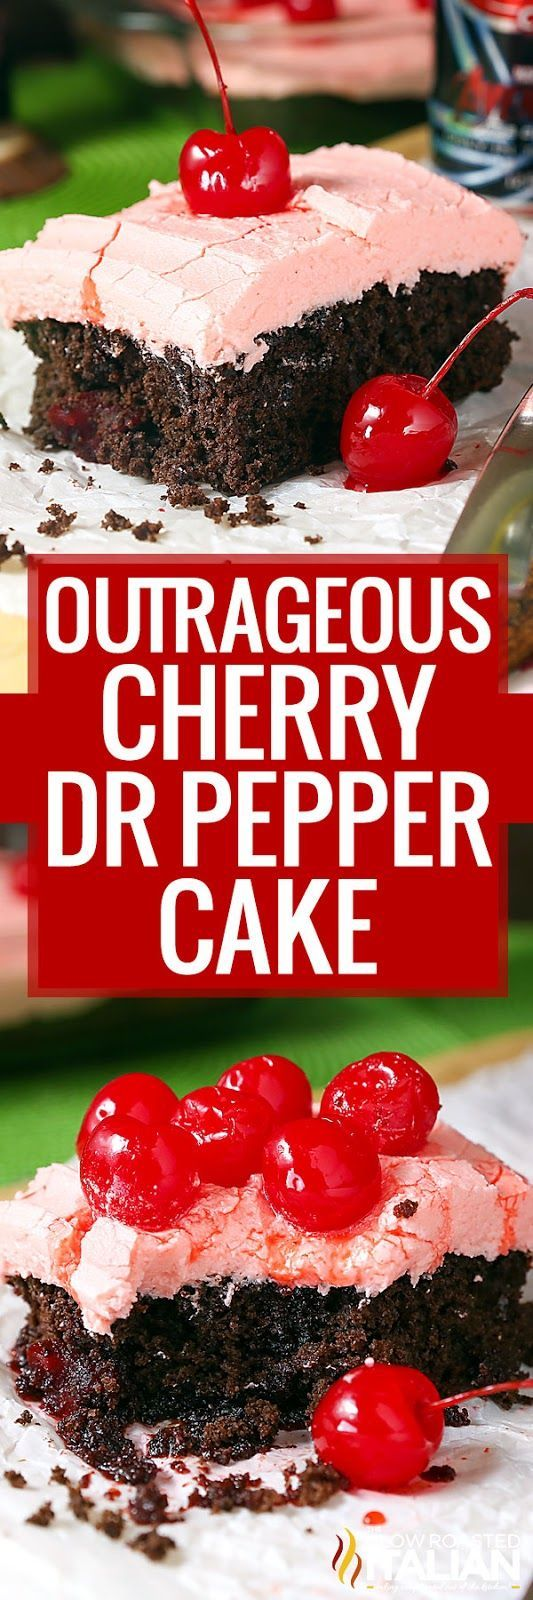 Cherry Dr Pepper Dump Cake is a incredibly flavorful cherry chocolate dump cake recipe with just 5 ingredients!